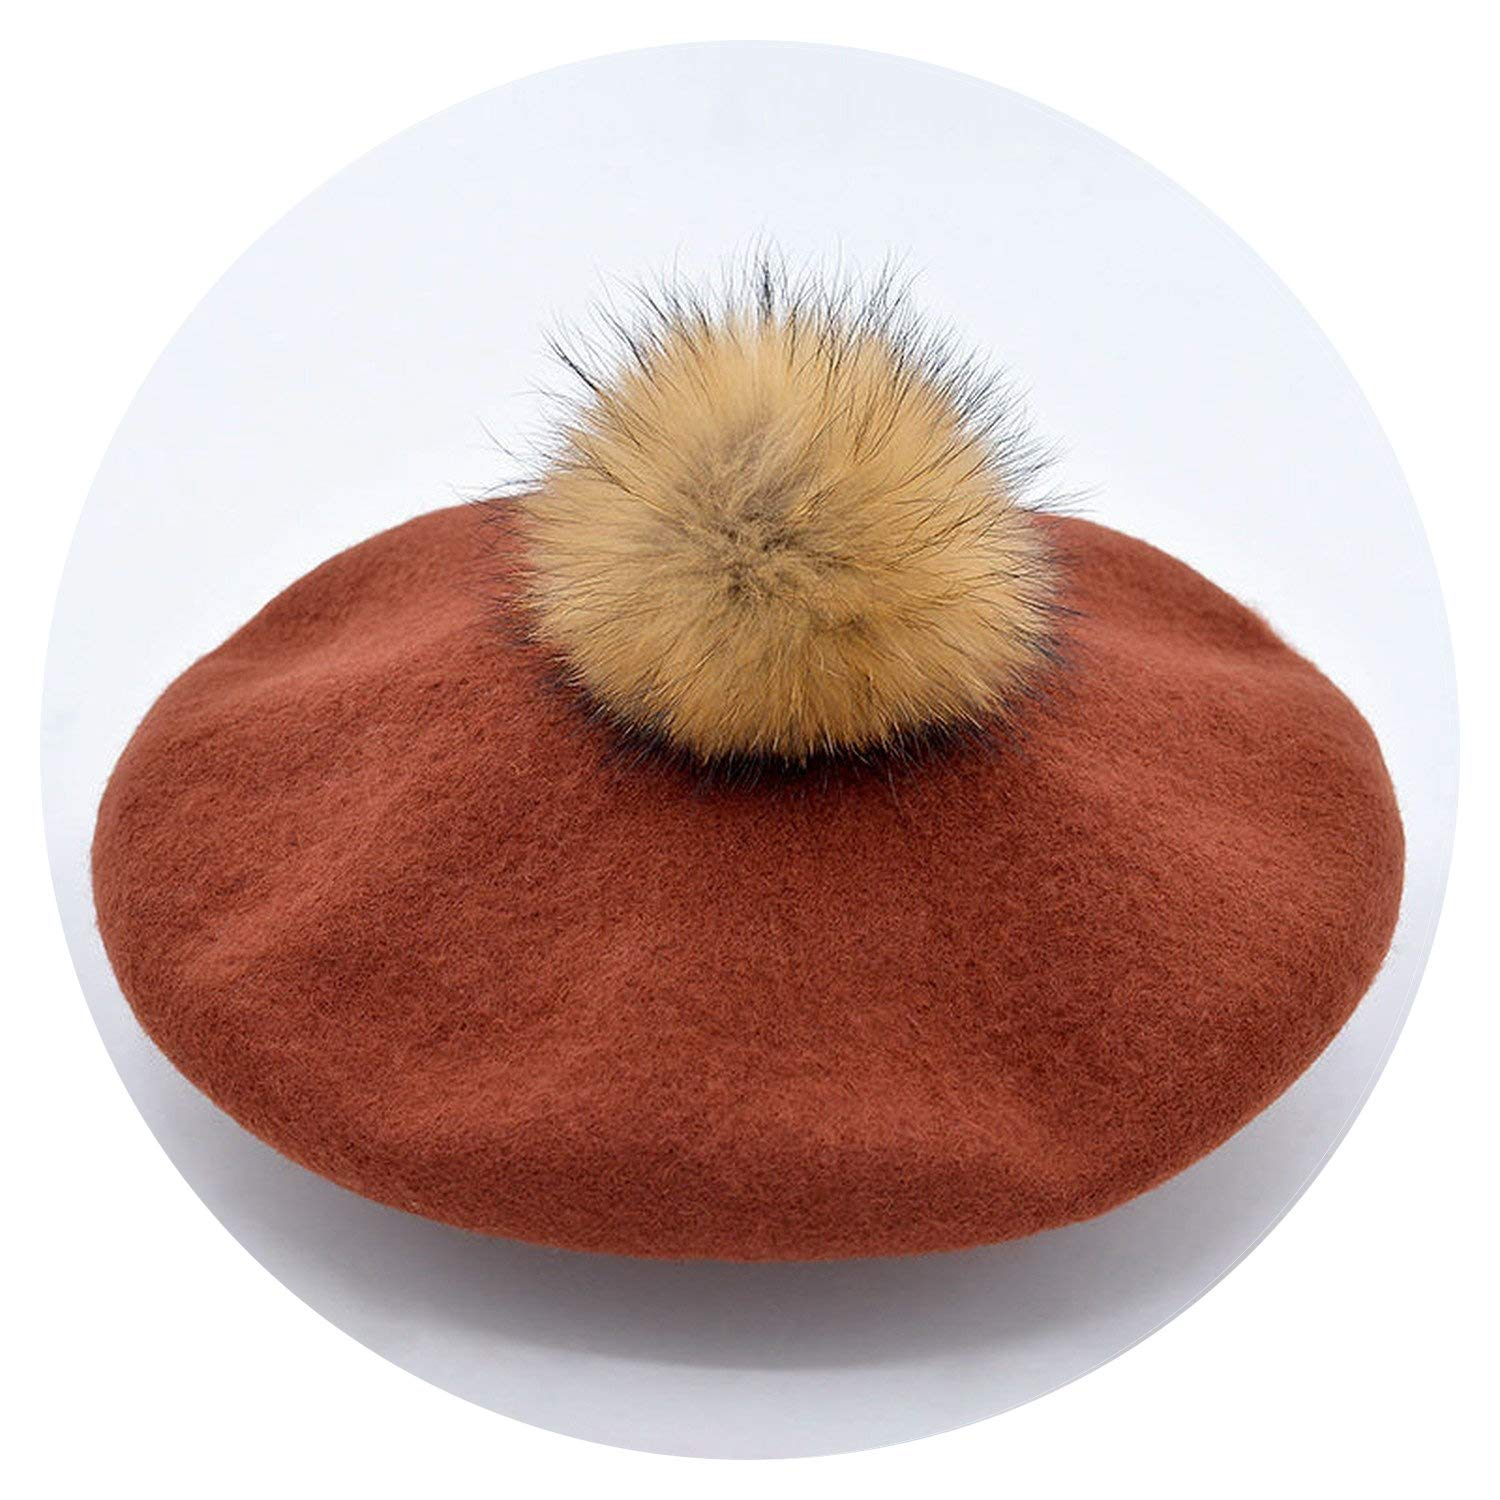 Beret Solid Color Female 100% Wool Berets Pompom,zhuan red,M(56-58Cm) by Chengzi-o hat